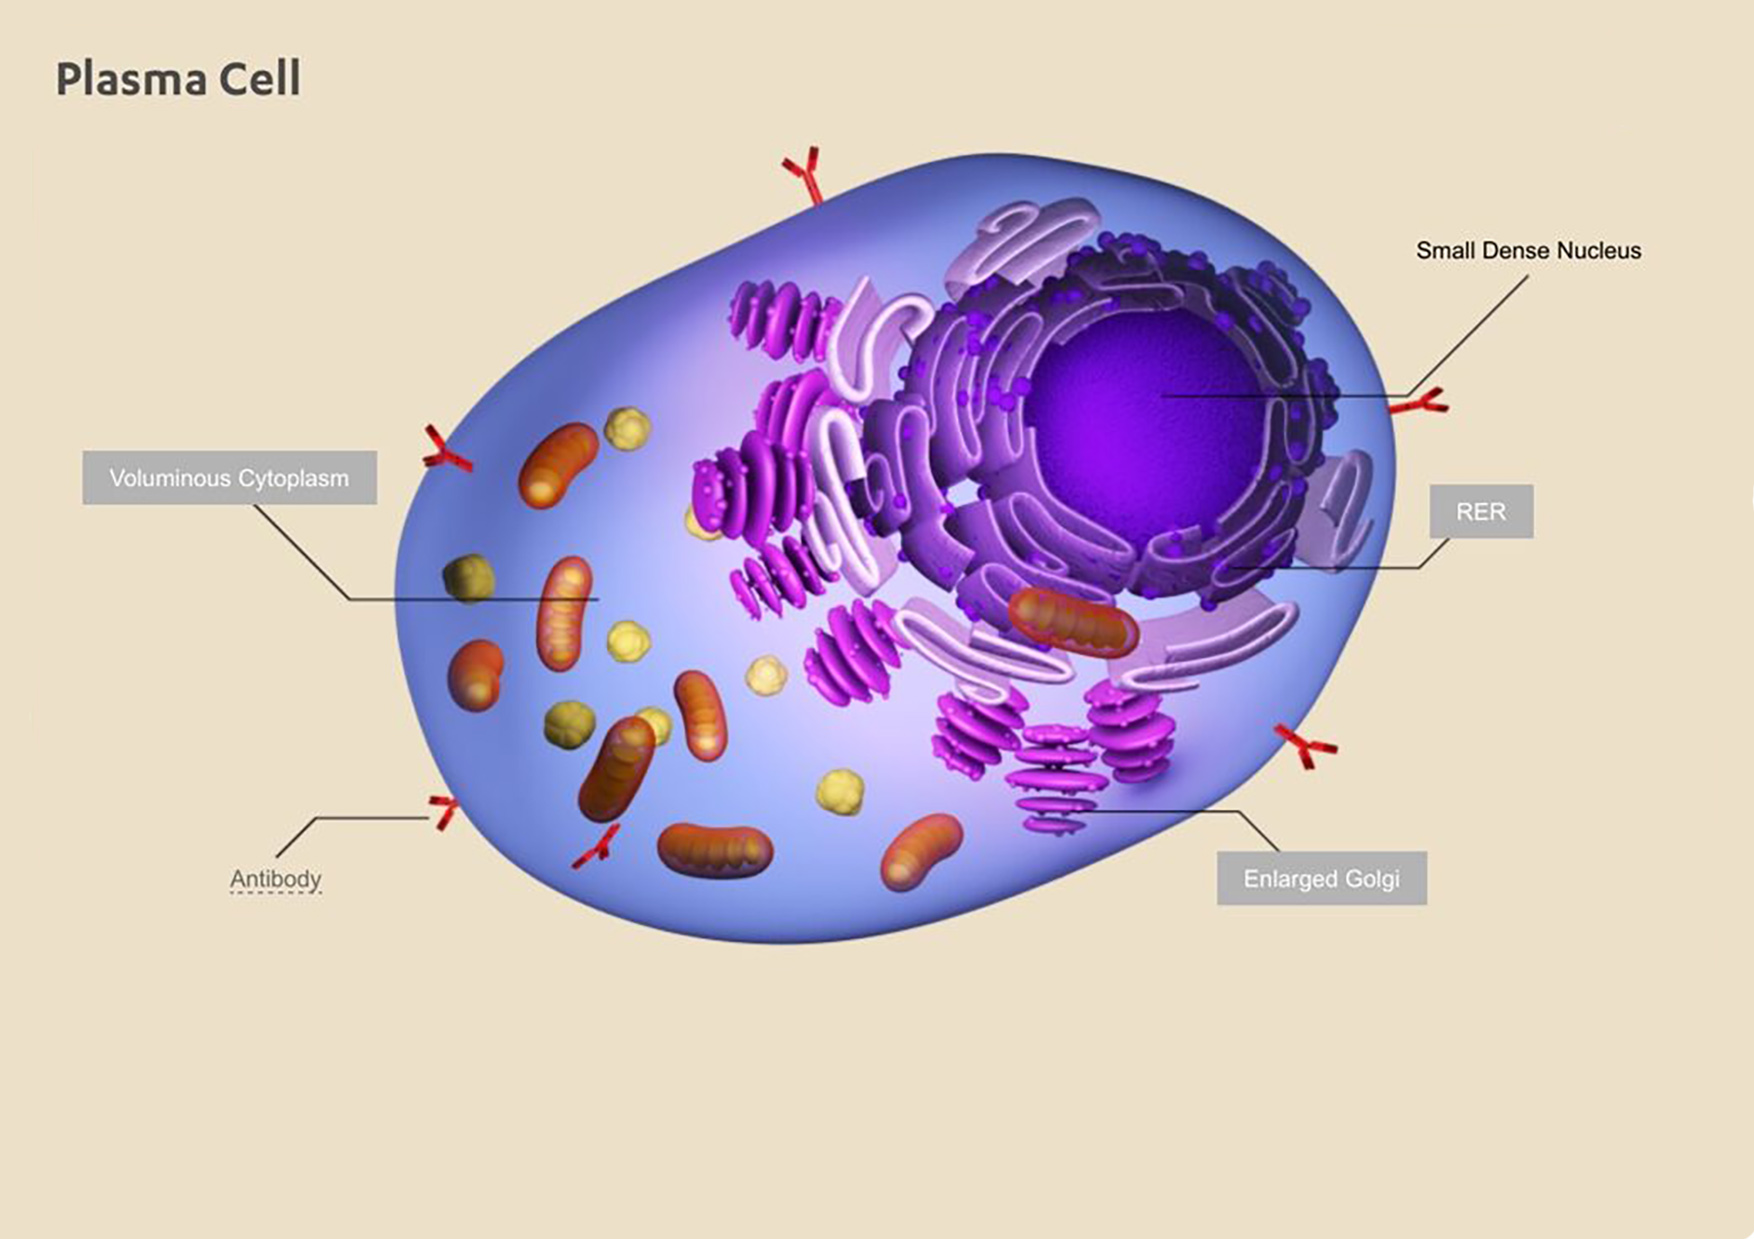 PR- elearning image plasma cell